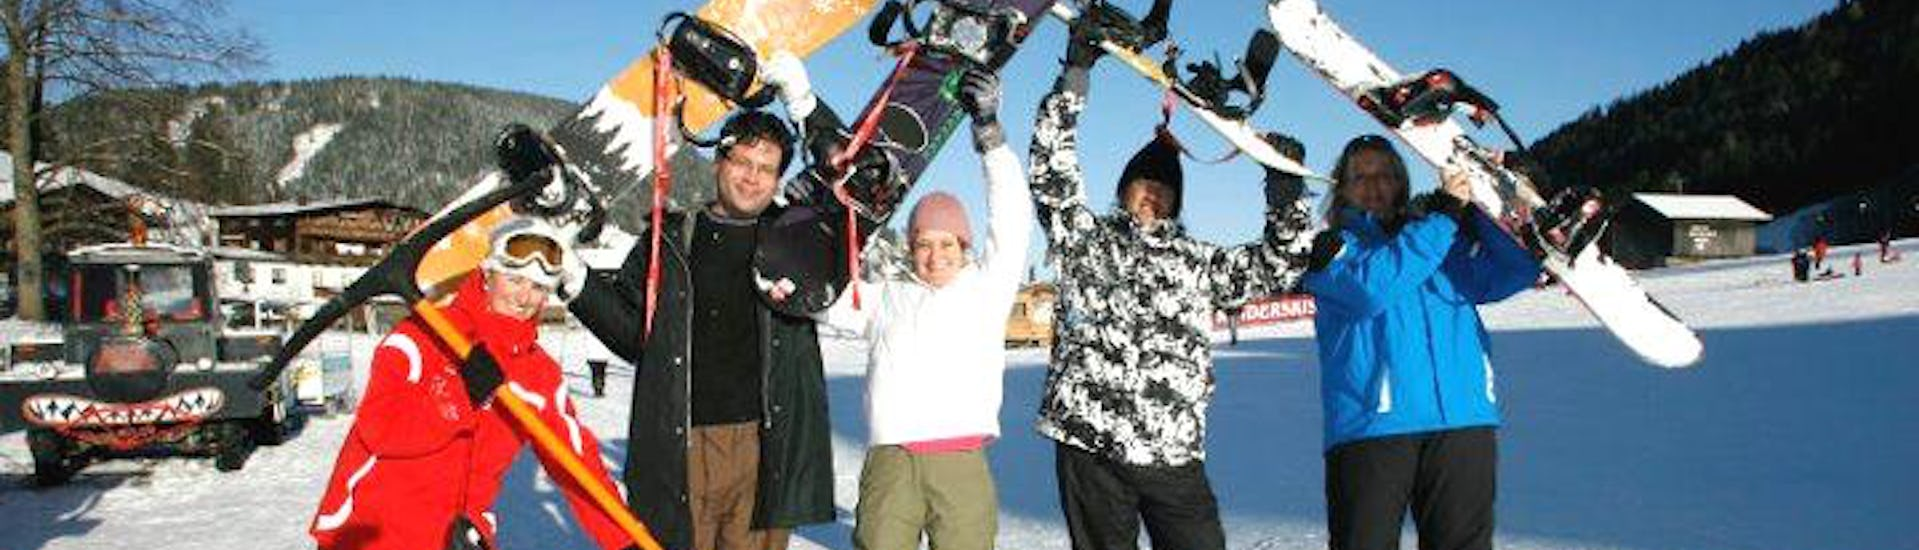 Snowboard Instructor Private - All Levels & Ages - Niederau